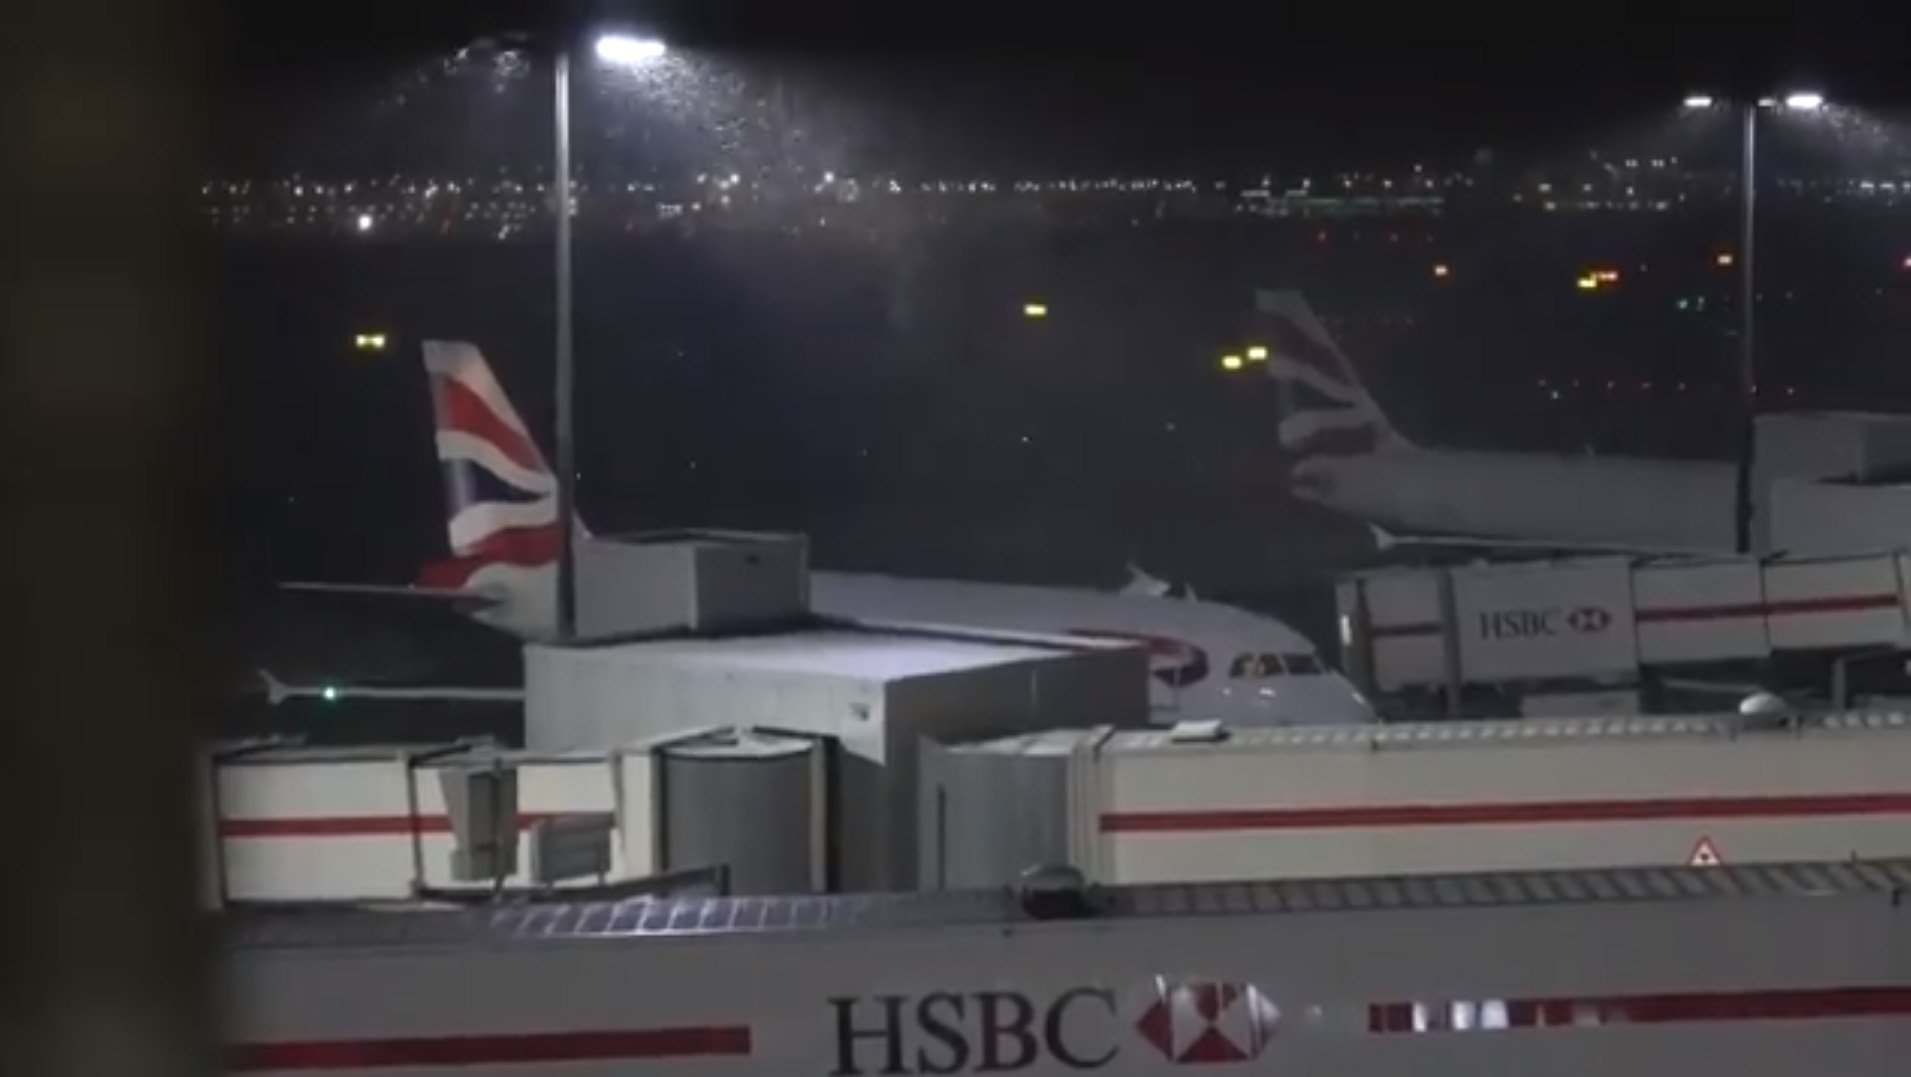 Snow hits Heathrow Airport, London. The start of what is expected to be a big snowfall in Southern England this evening, with snow falling at Heathrow Airport.